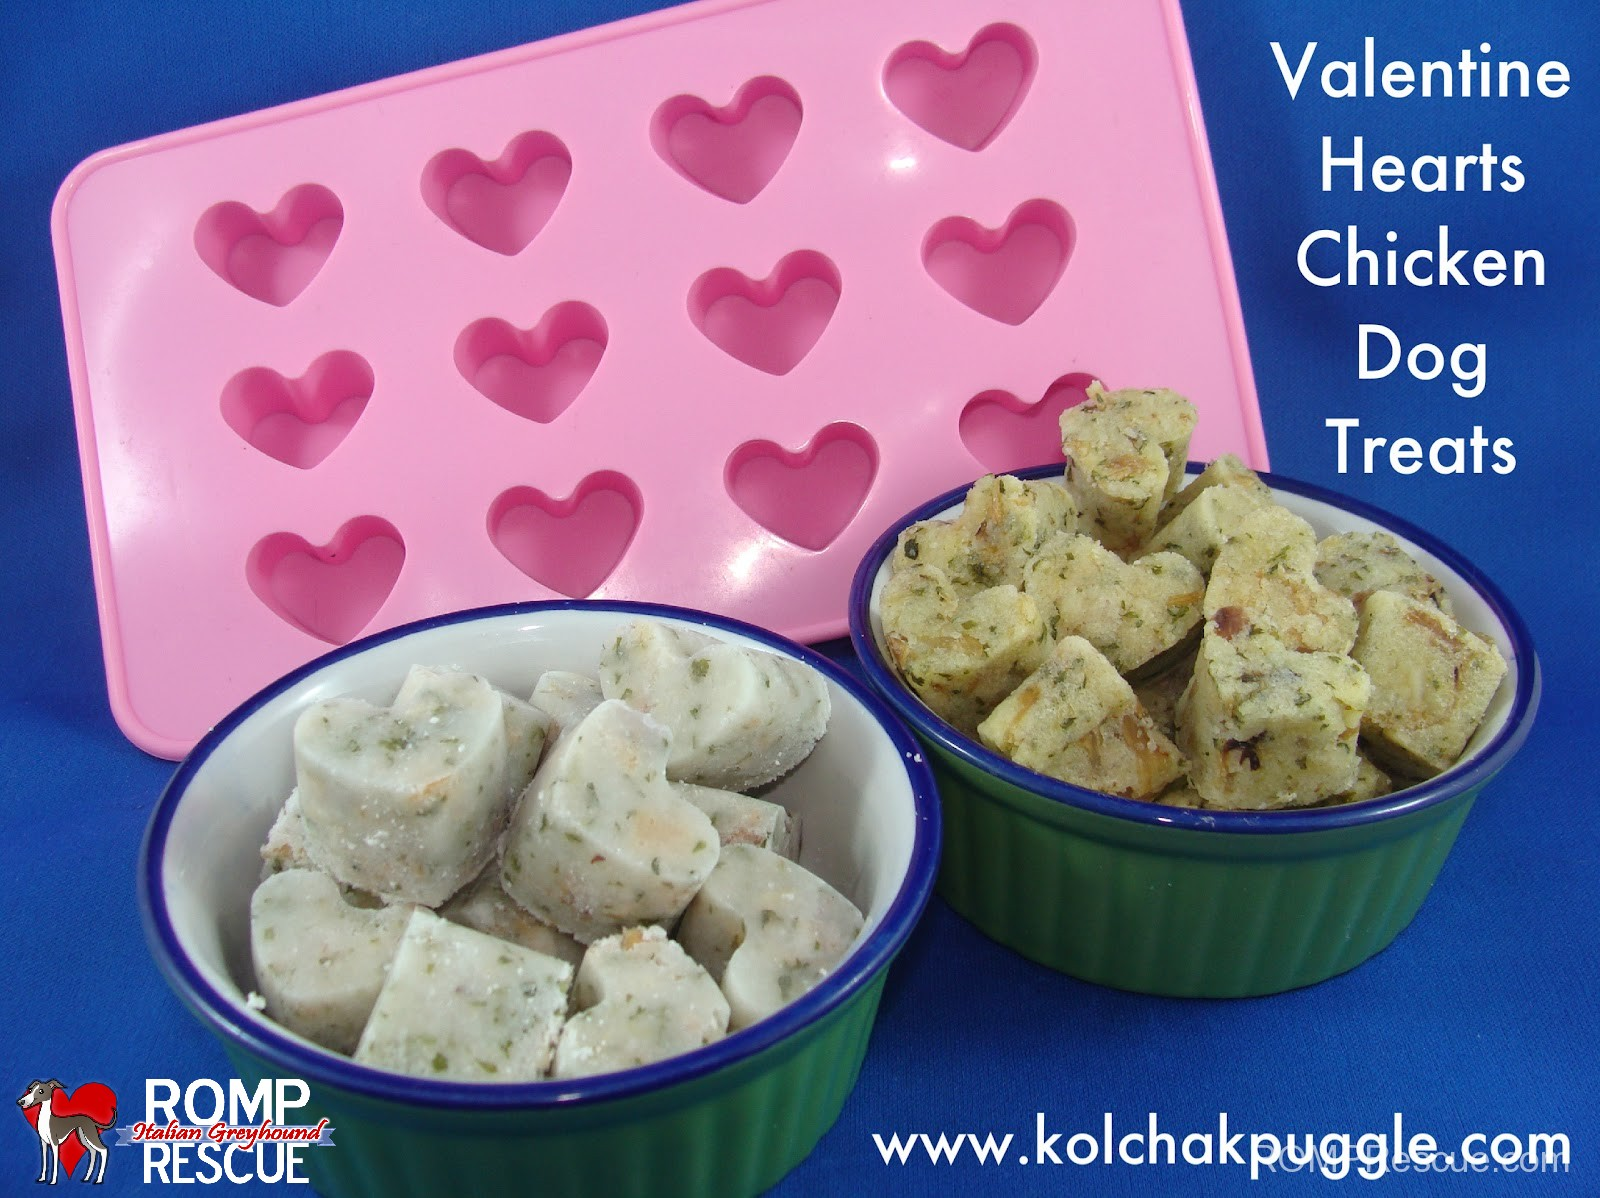 DIY Dog Valentine's Day, DIY, do it yourself, chicken treats, dog chicken, dog chicken treats, dog treats, valentines day, vday, v-day, hot, cold, do it yourself, recipe, ingredients, easy, simple, yummy, healthy, good, delicious, dog, pup, pet, dogs, pets, pups, pooch, pooches